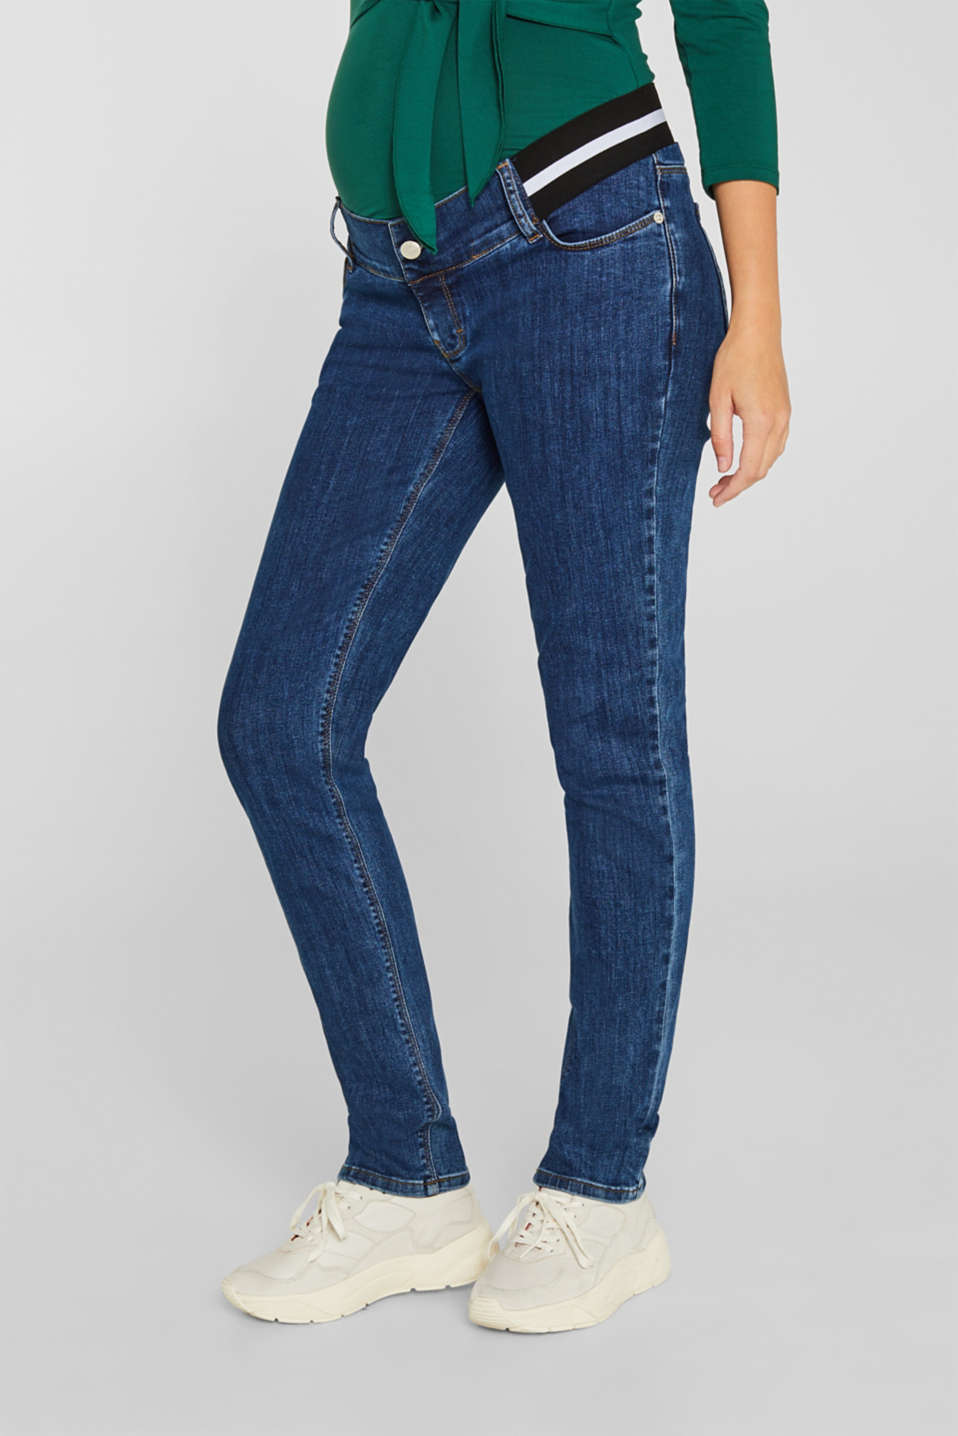 Esprit - Recycled jeans with an under-bump waistband